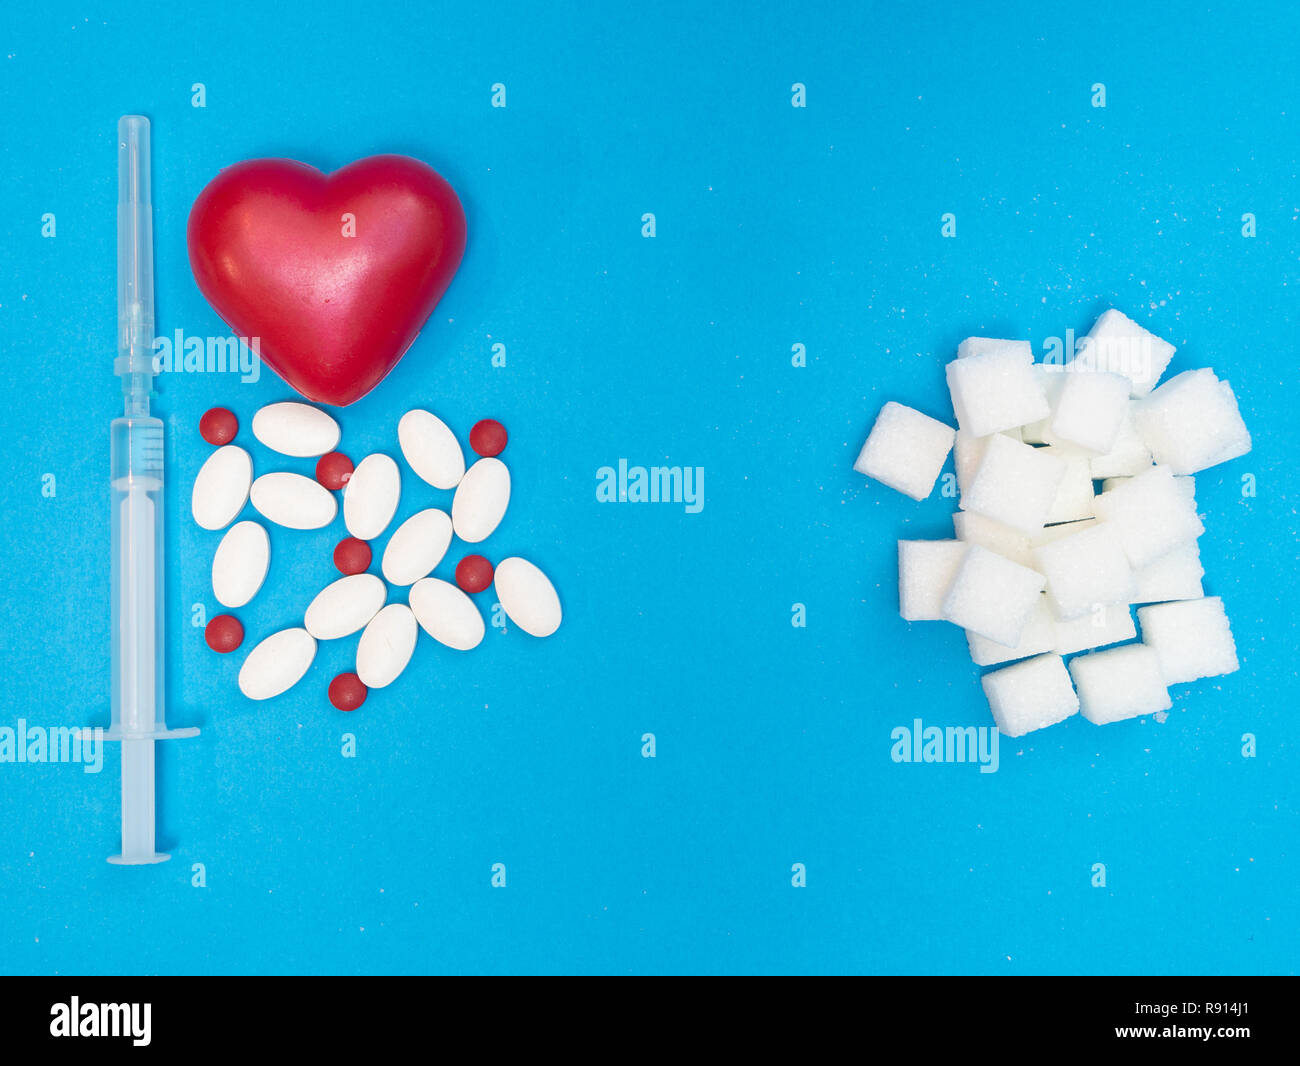 high level of sugar in blood cause heart disease. pills, drugs, red heart and syringe of injection and white blocks of refined sugar on blue backgroun - Stock Image